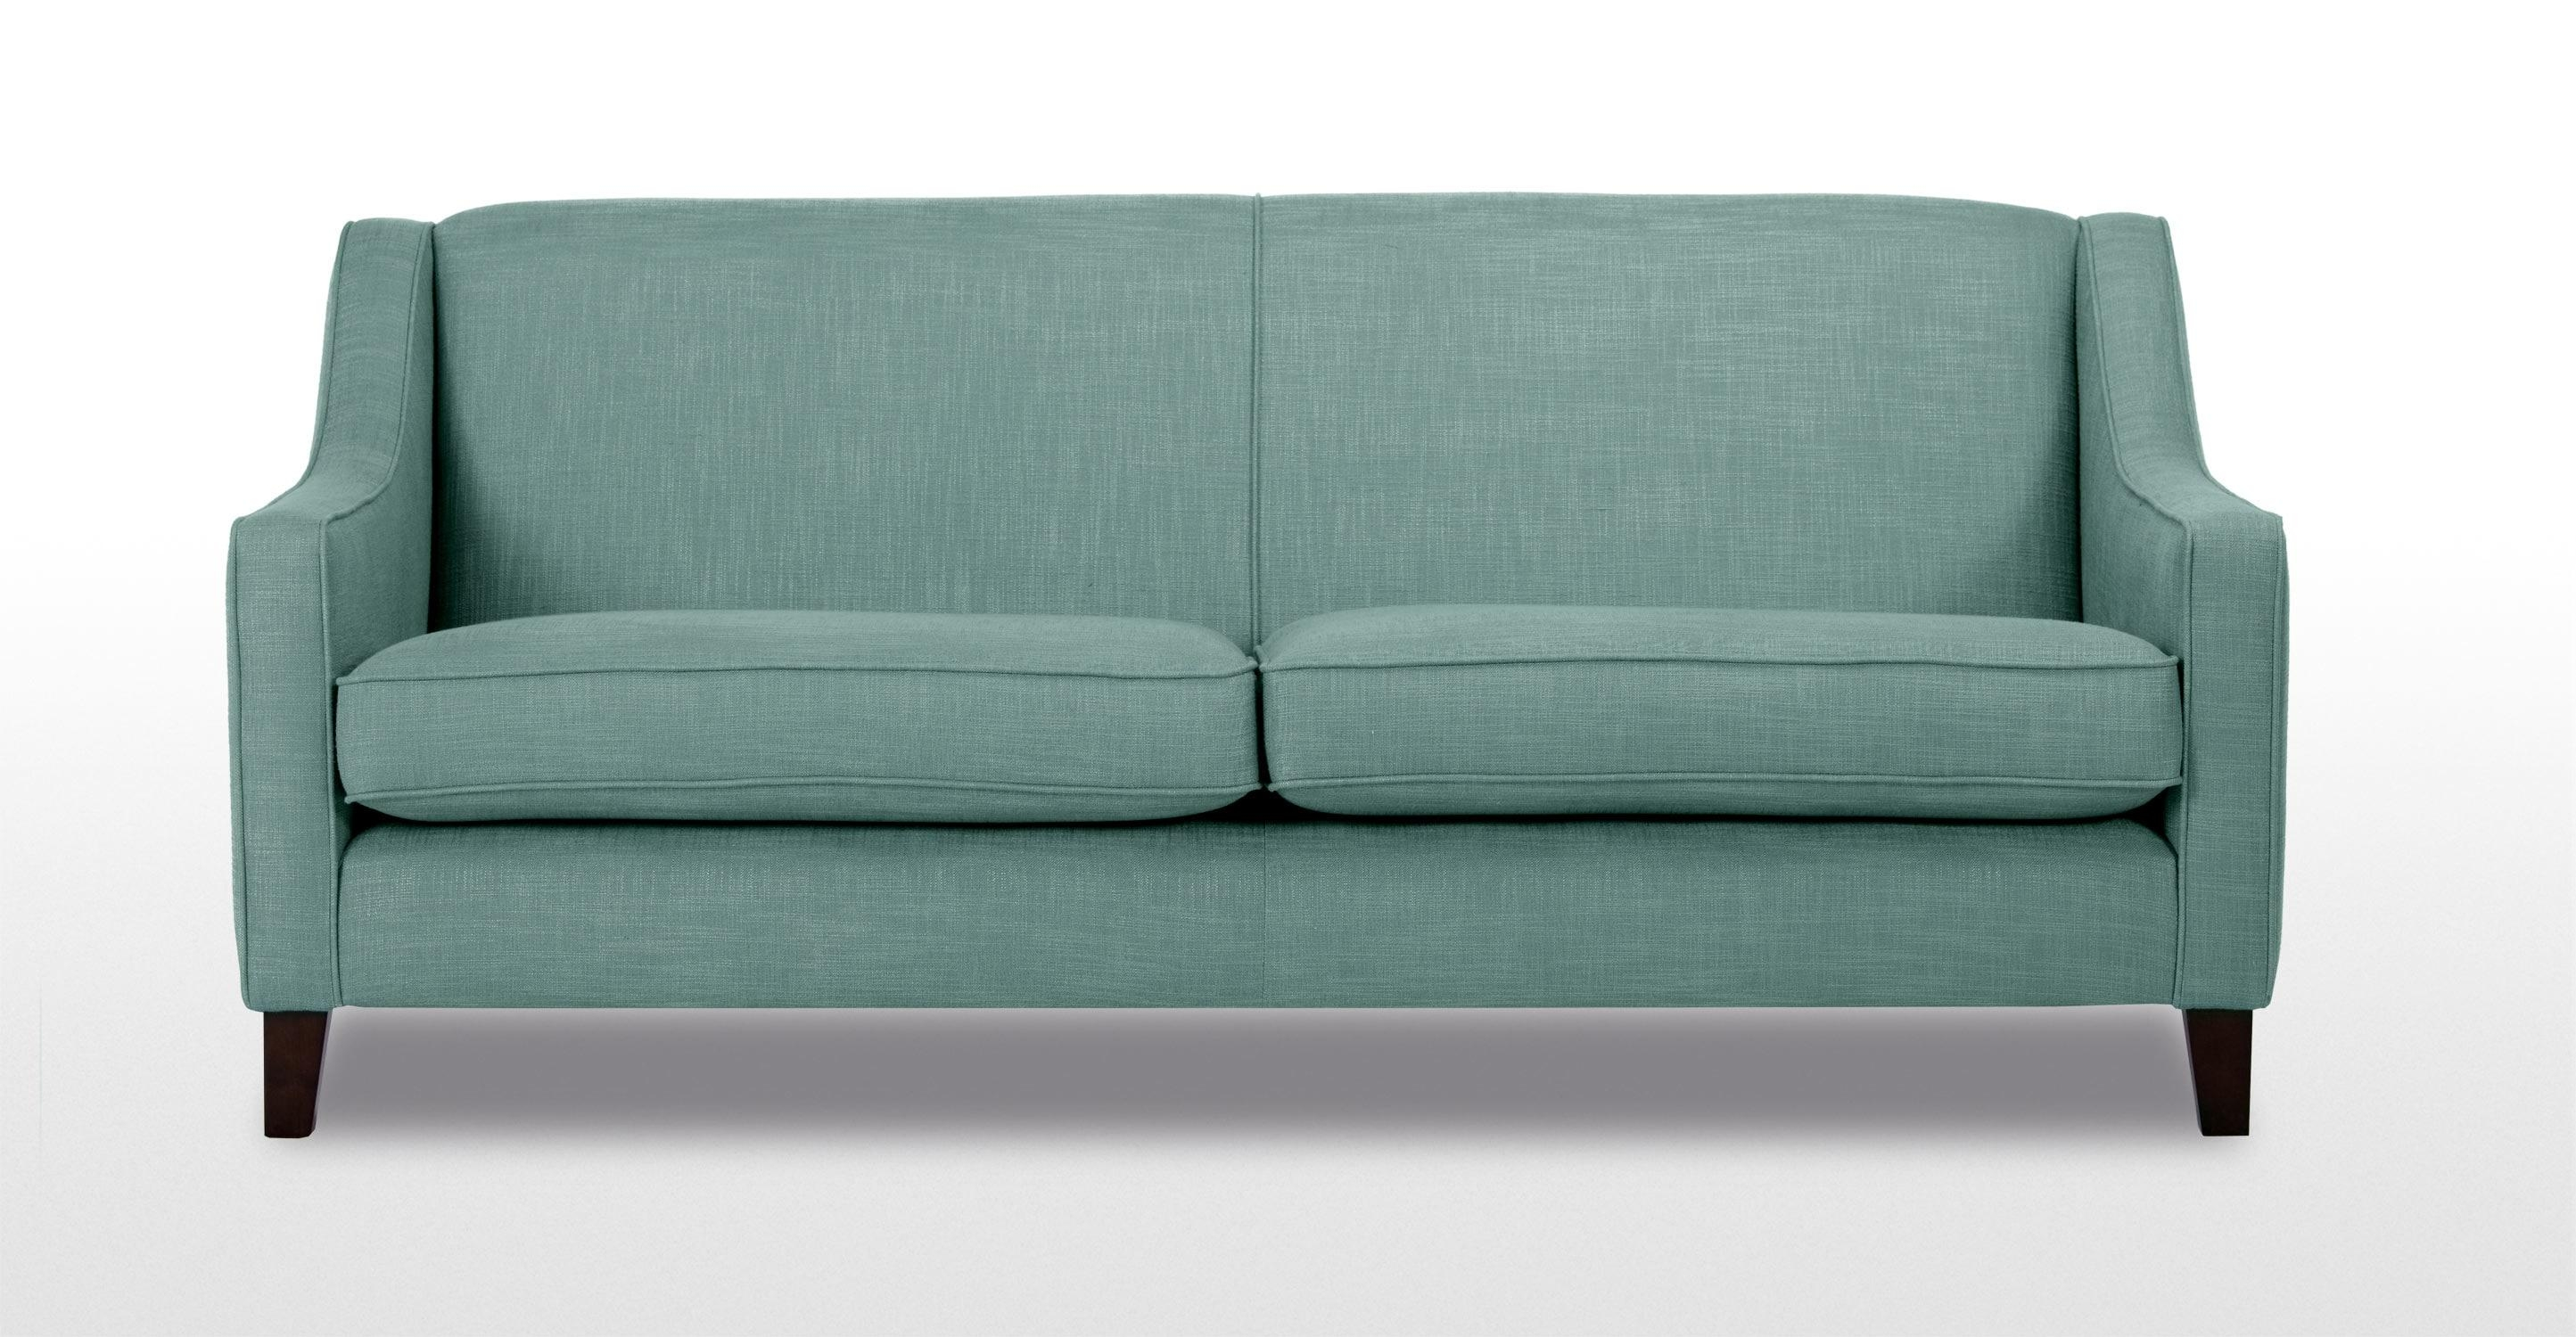 Halston 3 Seater Sofa In Aqua | Made Throughout Three Seater Sofas (View 15 of 20)